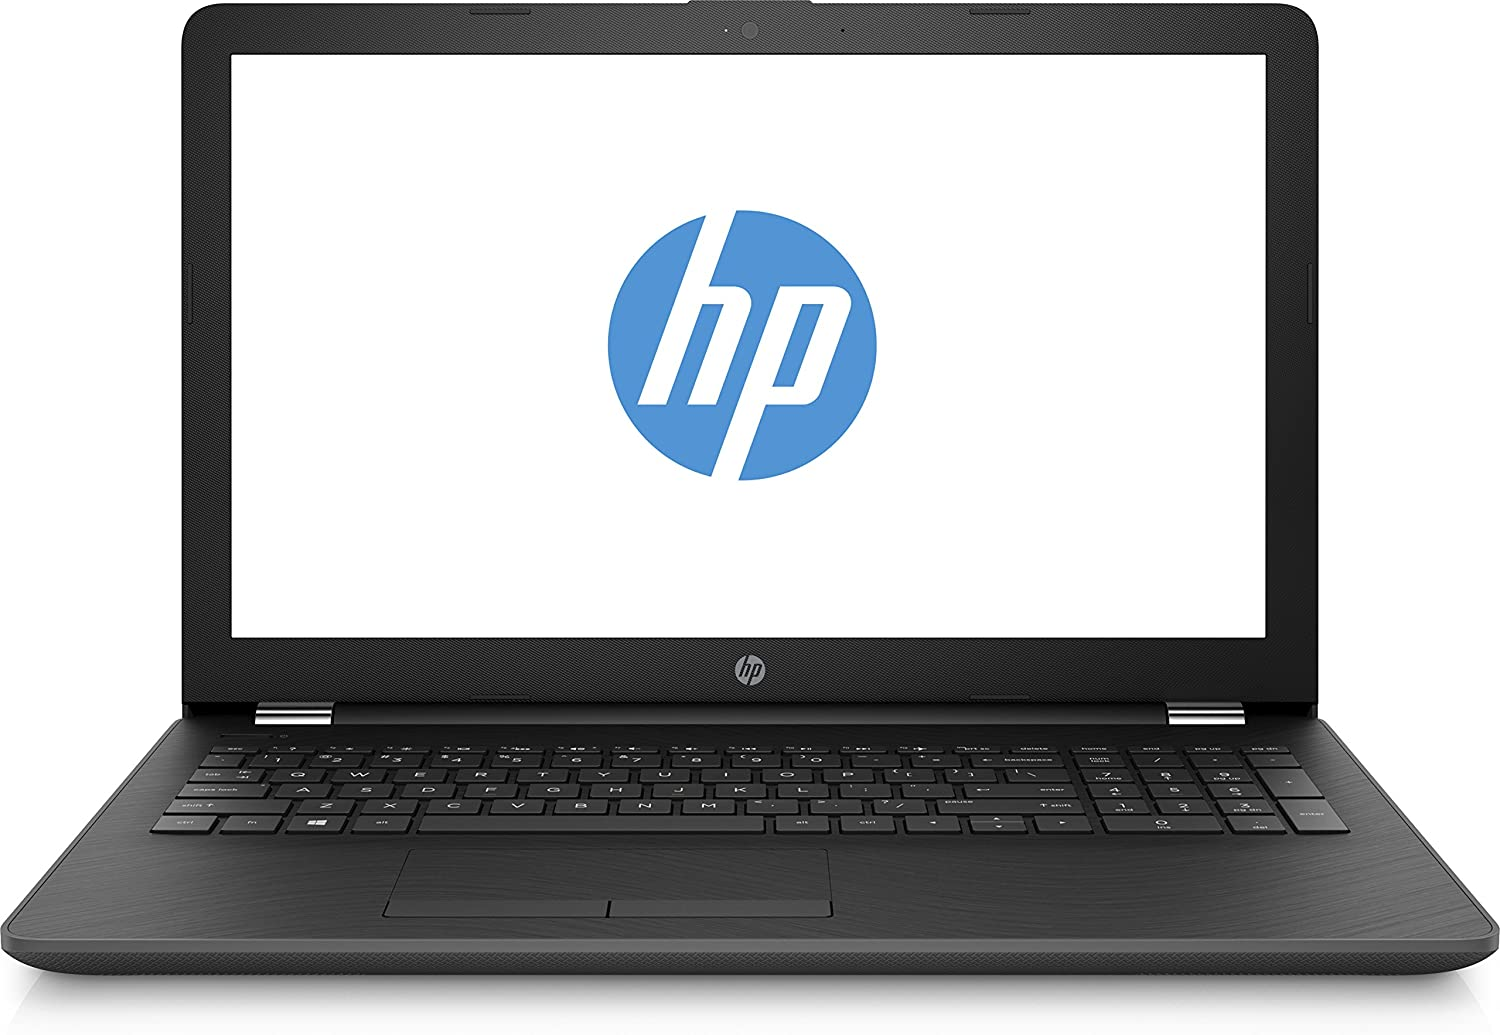 "2018 HP 15.6"" Touch Screen, 8th Gen Intel Core i7-8550U, 8GB Memory, 256GB Solid State Drive, Windows 10 Home"